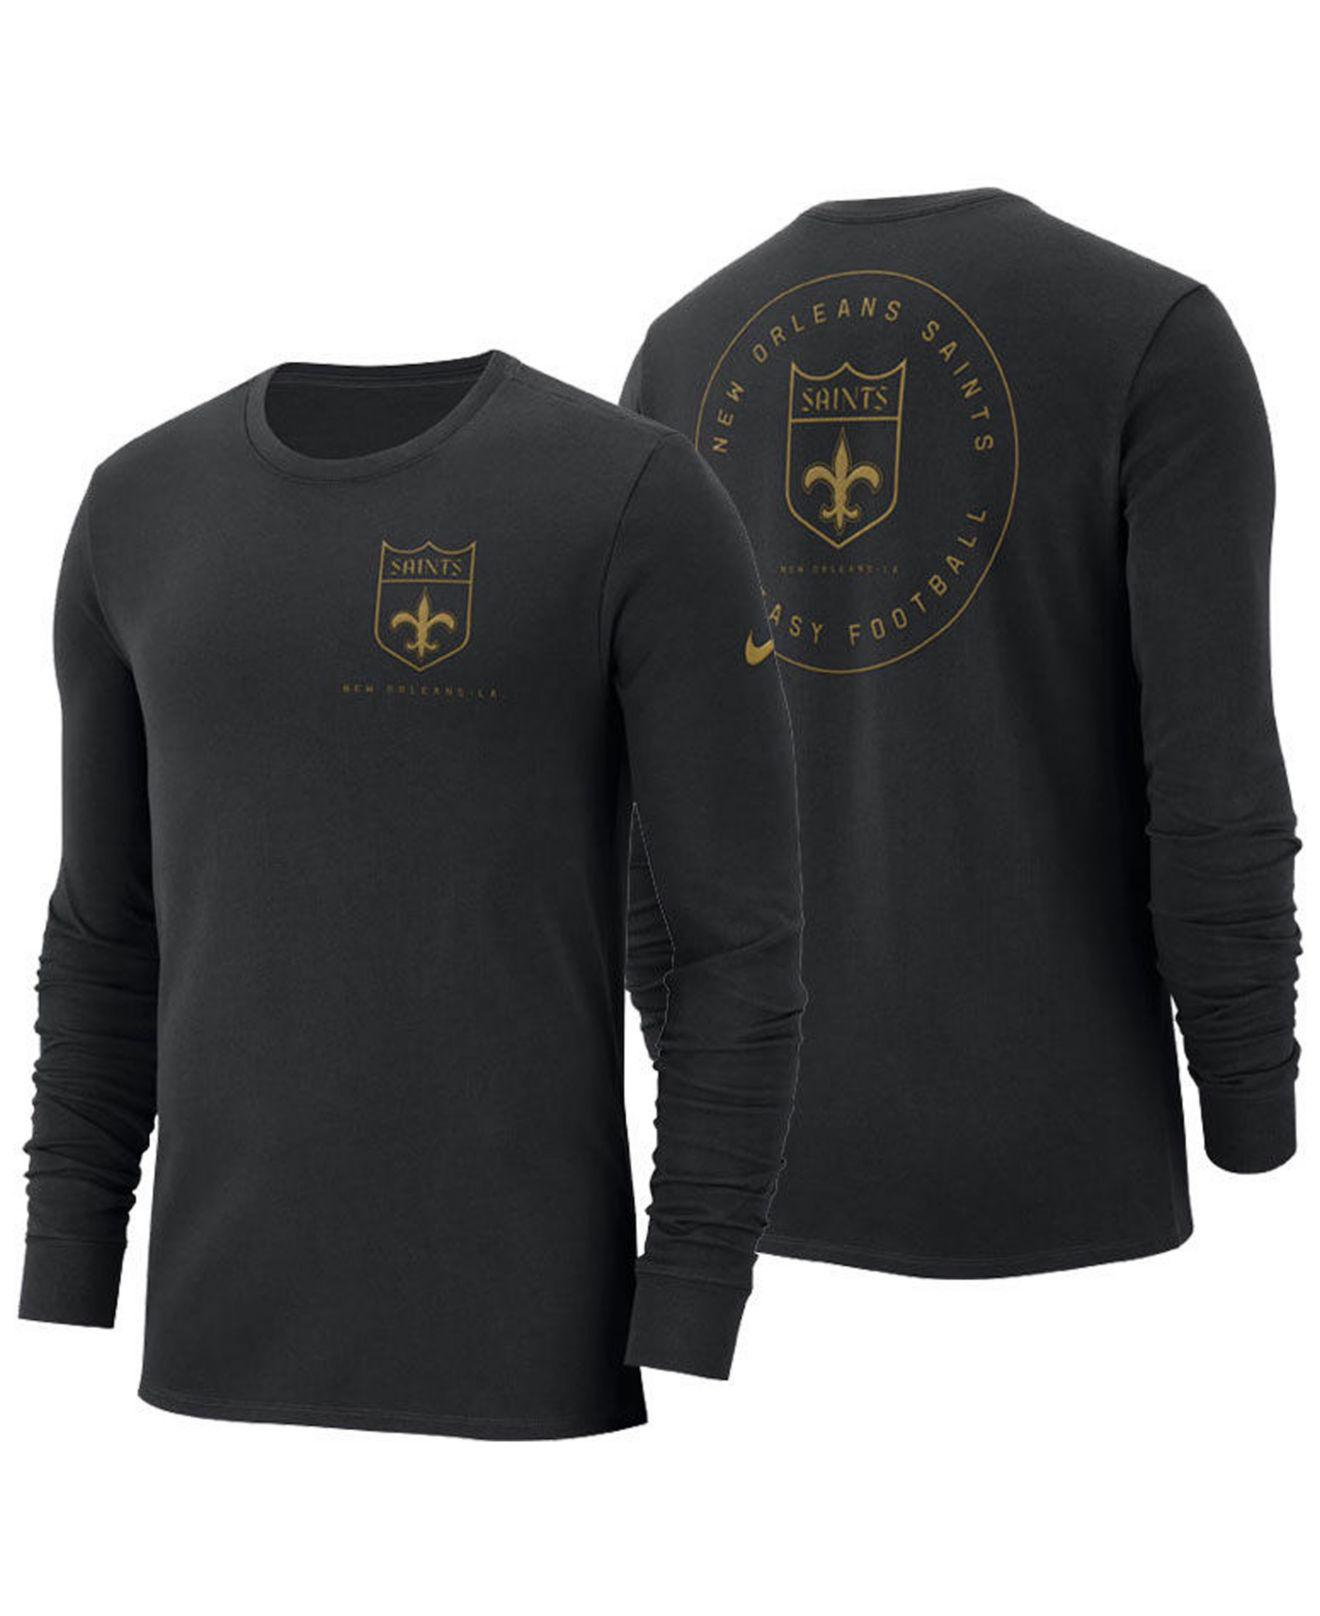 Lyst - Nike New Orleans Saints Heavyweight Seal Long Sleeve T-shirt ... 2bc2a210d